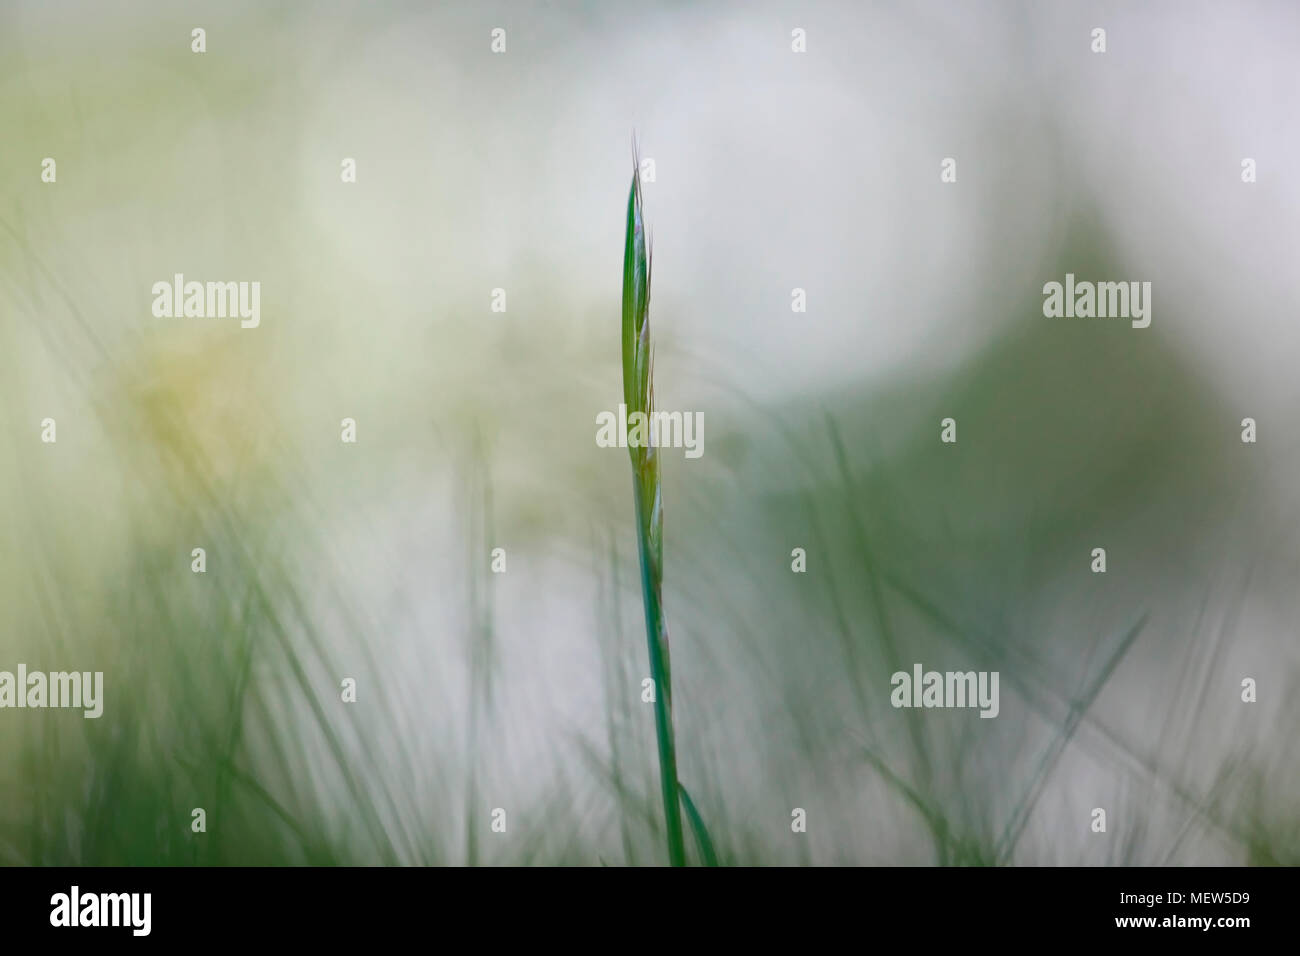 A single blade of green grass is standing out in a meadow. - Stock Image